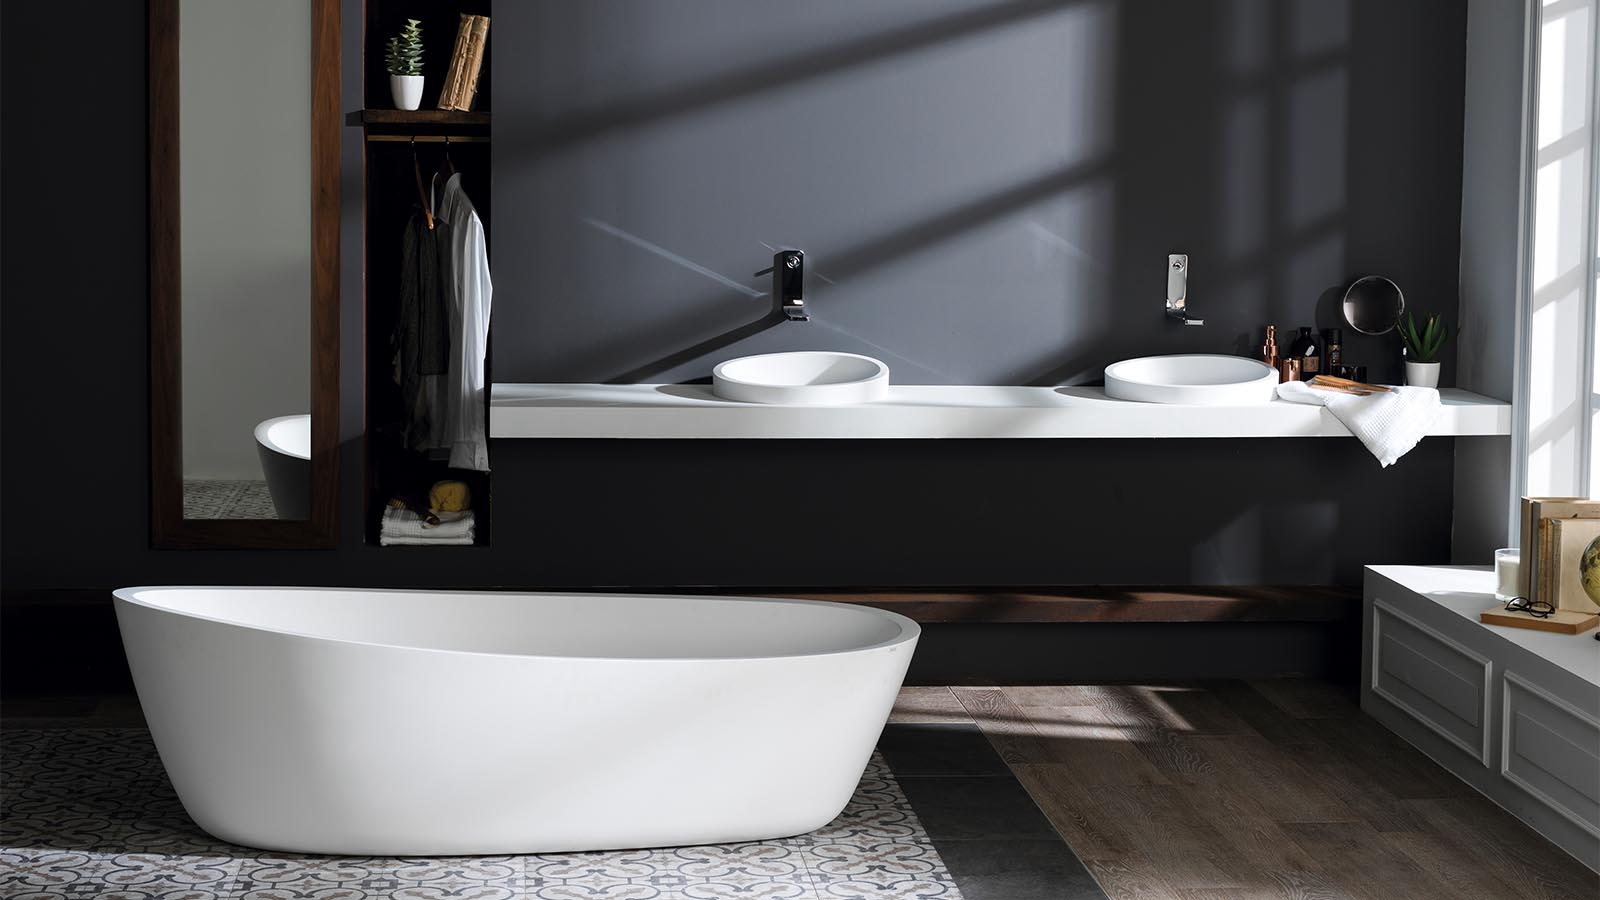 The how and why of the freestanding bath in a small bathroom